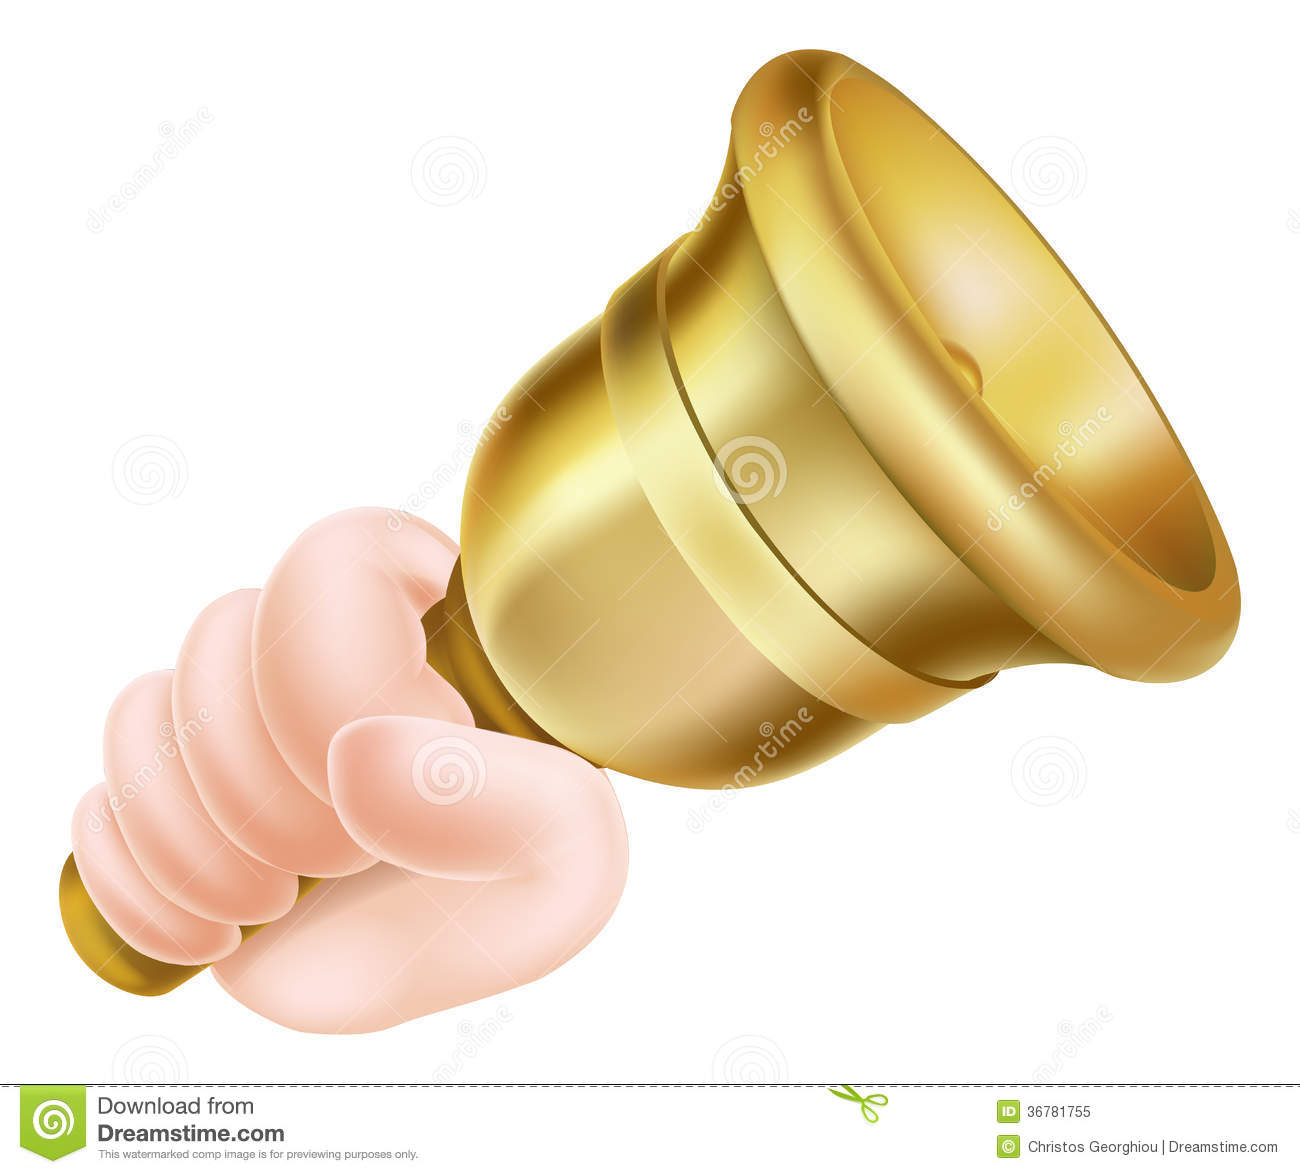 Illustration of a cartoon hand holding a gold hand bell and ringing it ...